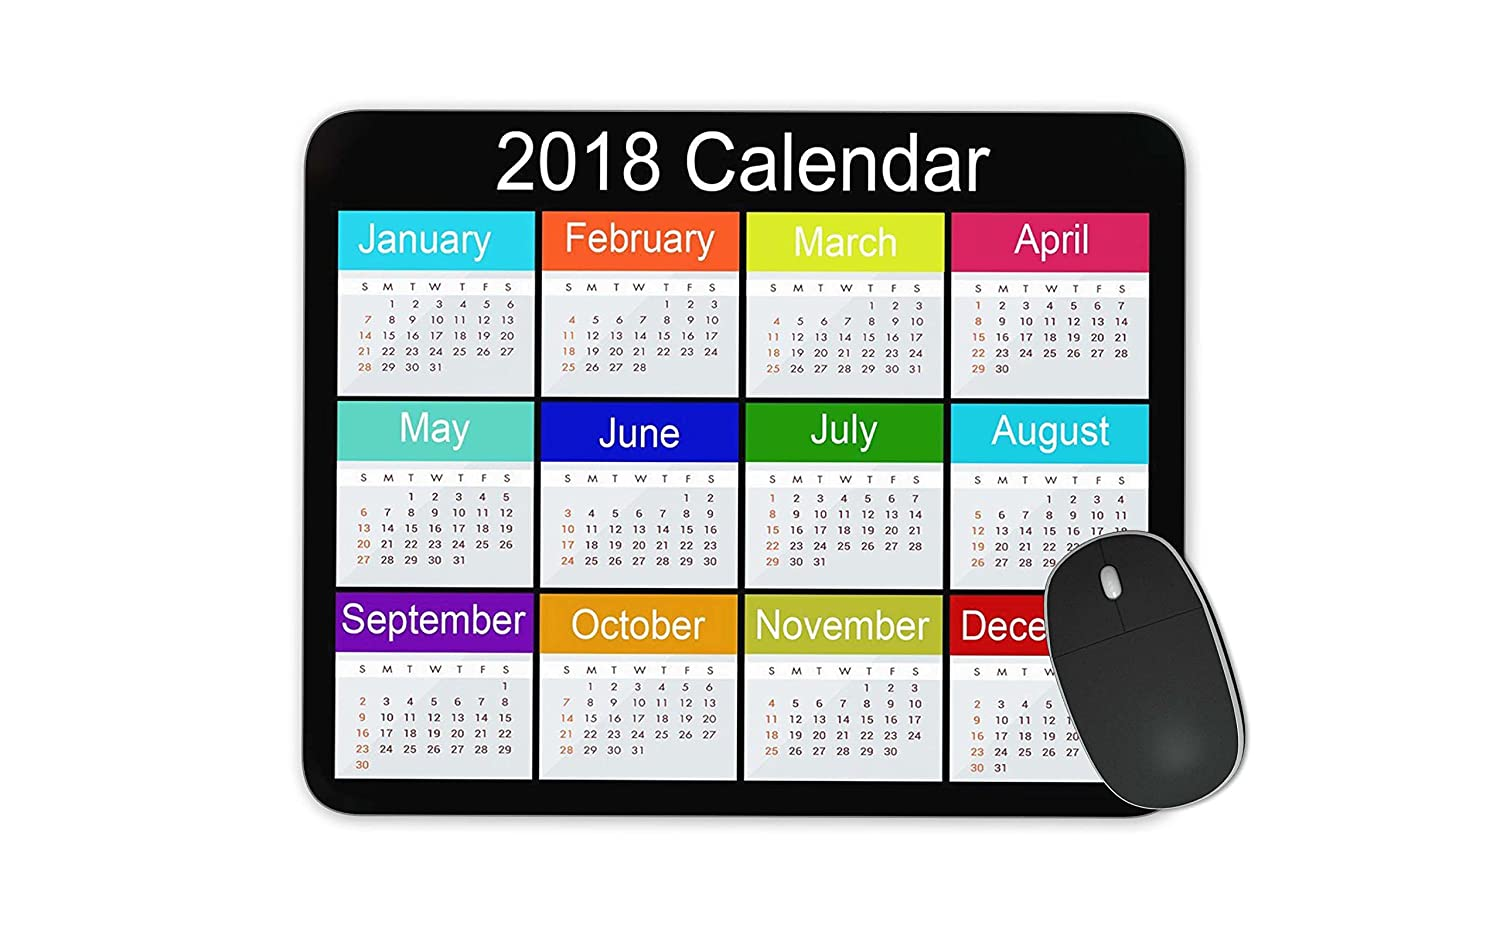 2018 calendar Mouse pad Gaming Mouse pad Mousepad Nonslip Rubber Backing